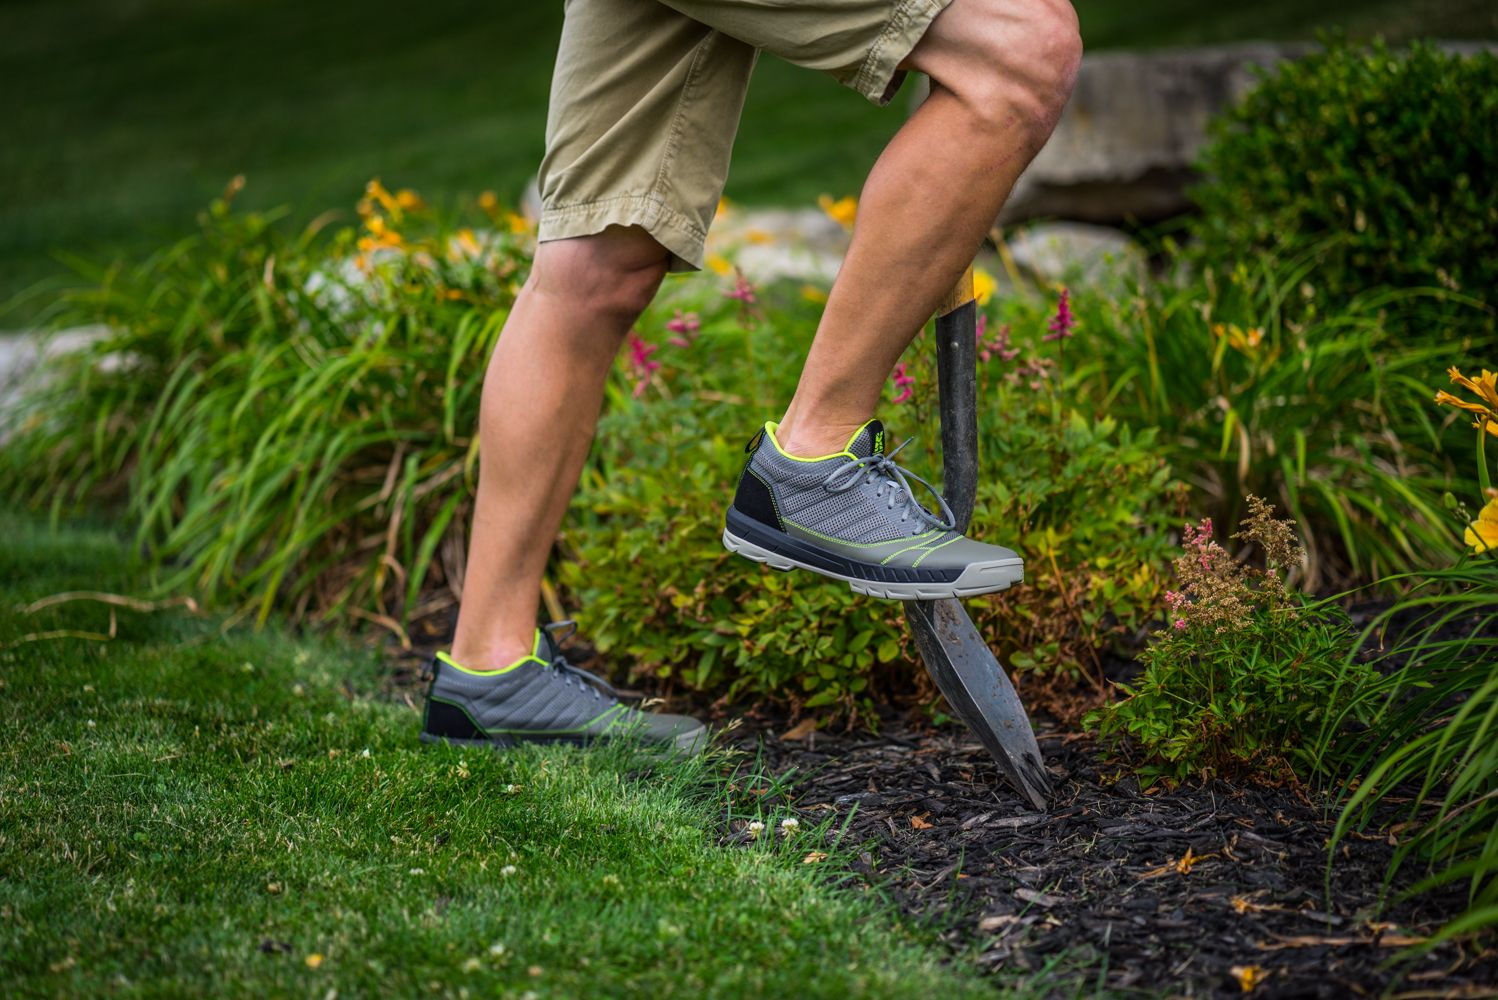 Cushioned Eva Midsole And Rubber Sole Make The Kujo Yardshoes Comfortable While Working In The Yard Most Comfortable Shoes Shoes Comfortable Shoes